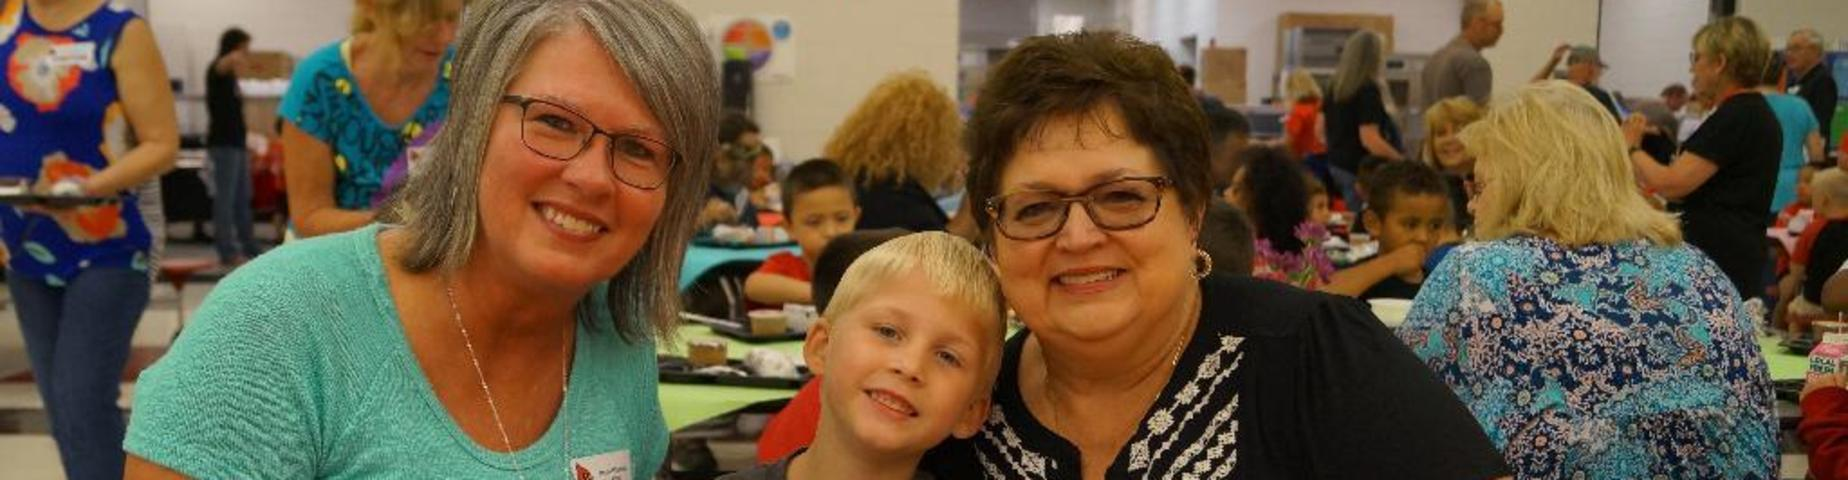 Grandparents enjoy breakfast with their grandchild at Mayfield Elementary